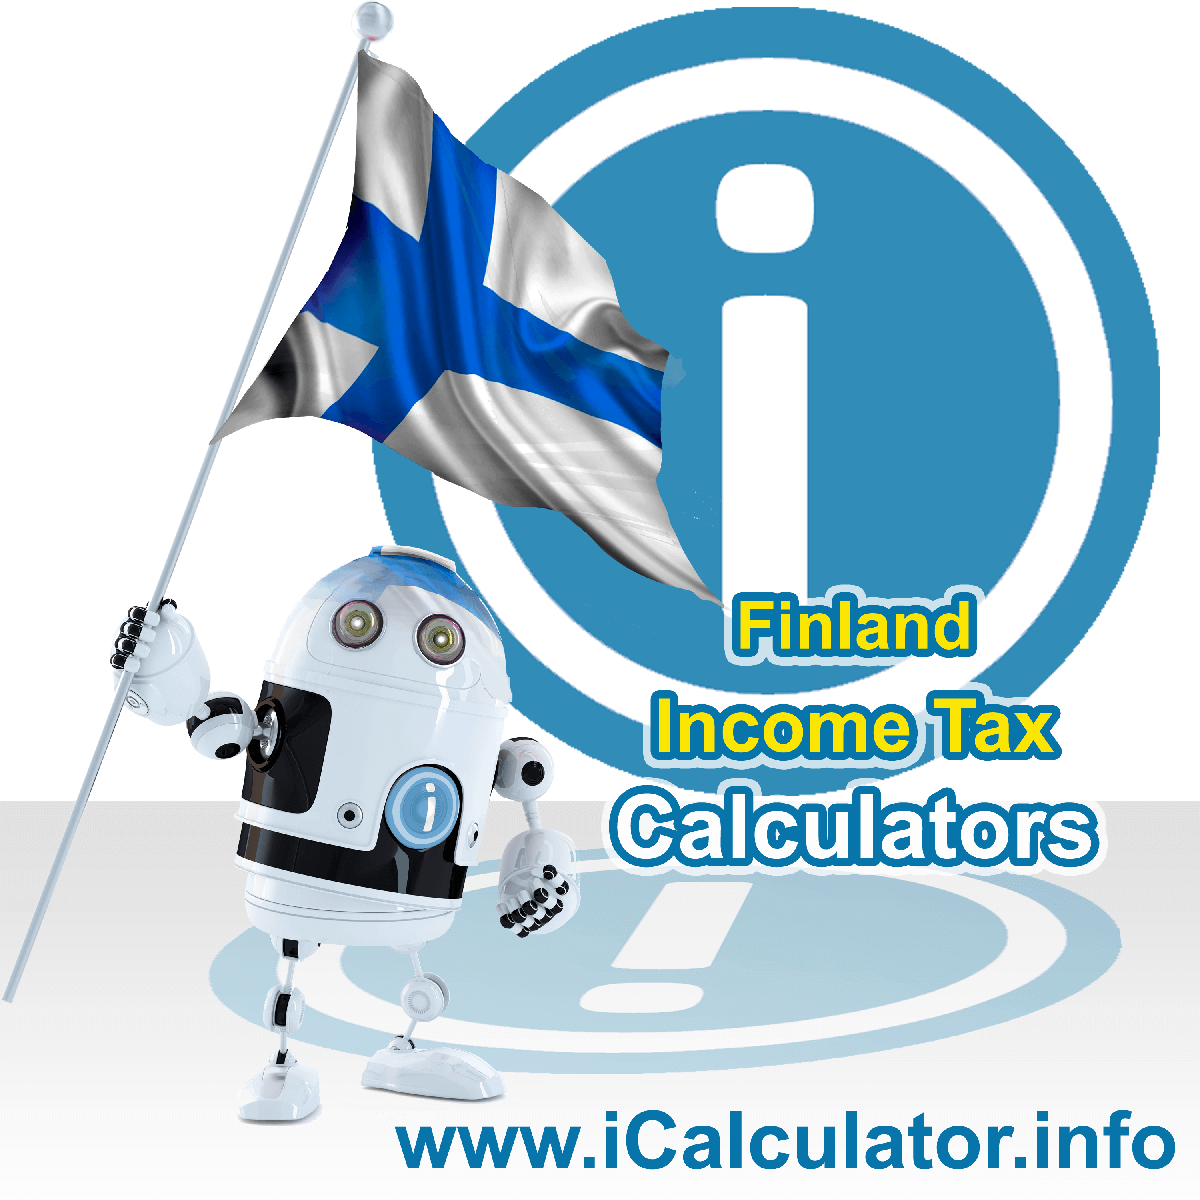 Finland Income Tax Calculator. This image shows a new employer in Finland calculating the annual payroll costs based on multiple payroll payments in one year in Finland using the Finland income tax calculator to understand their payroll costs in Finland in 2021